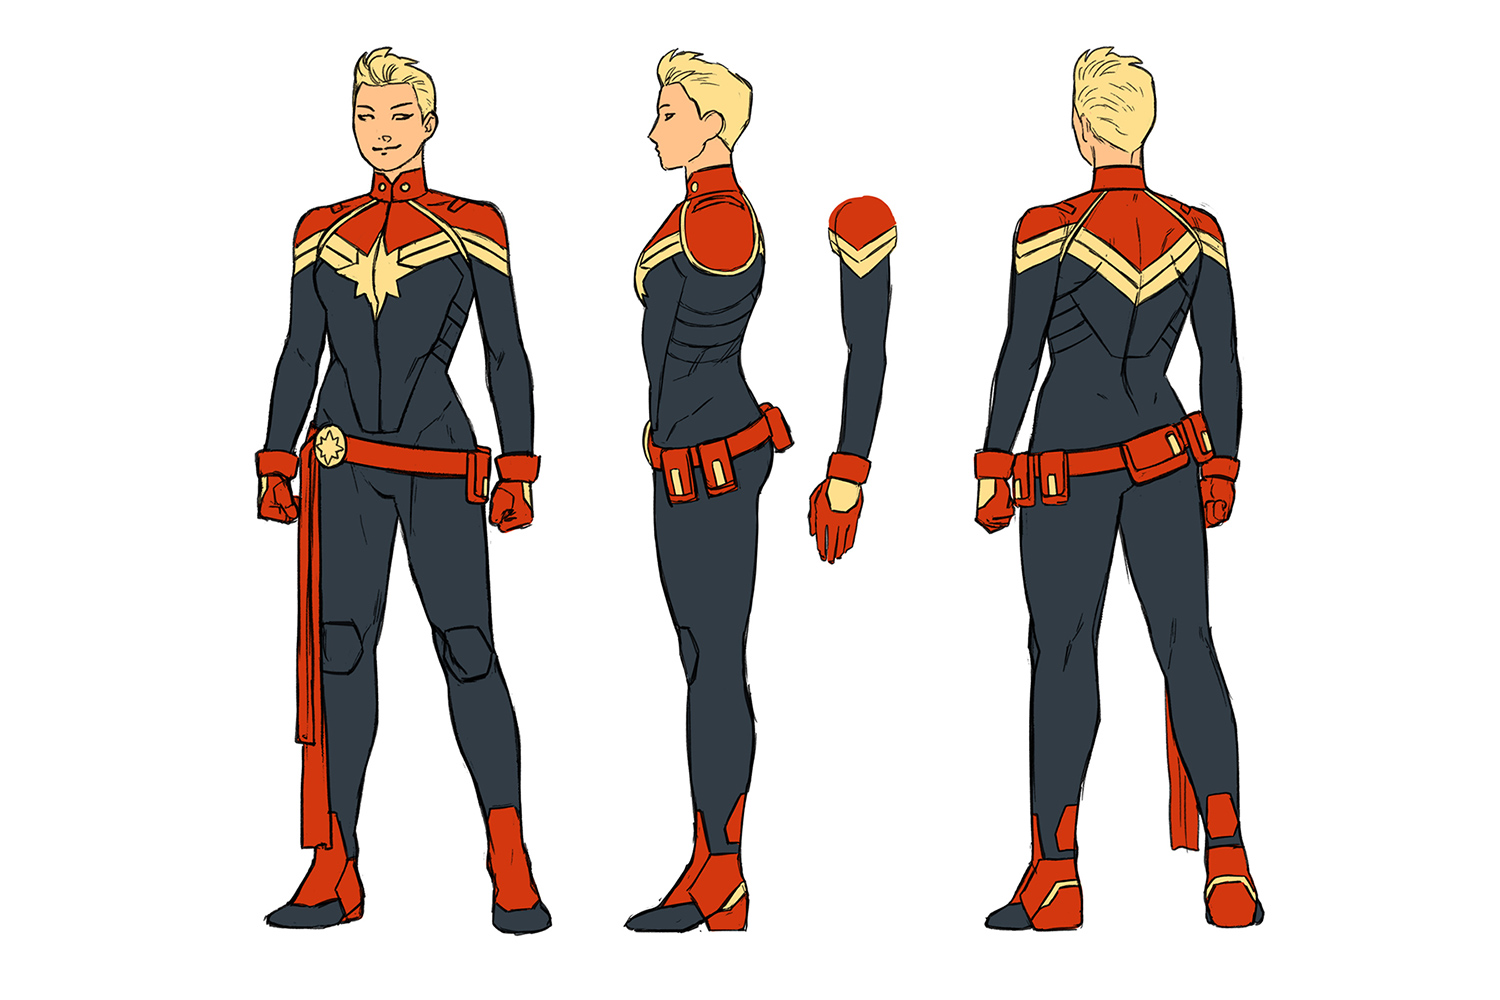 http://b.fastcompany.net/multisite_files/fastcompany/slideshow/2015/06/3047641-slide-s-3-first-look-at-the-new-captain-marvel-written-by-agent-carter-showrunner.jpg